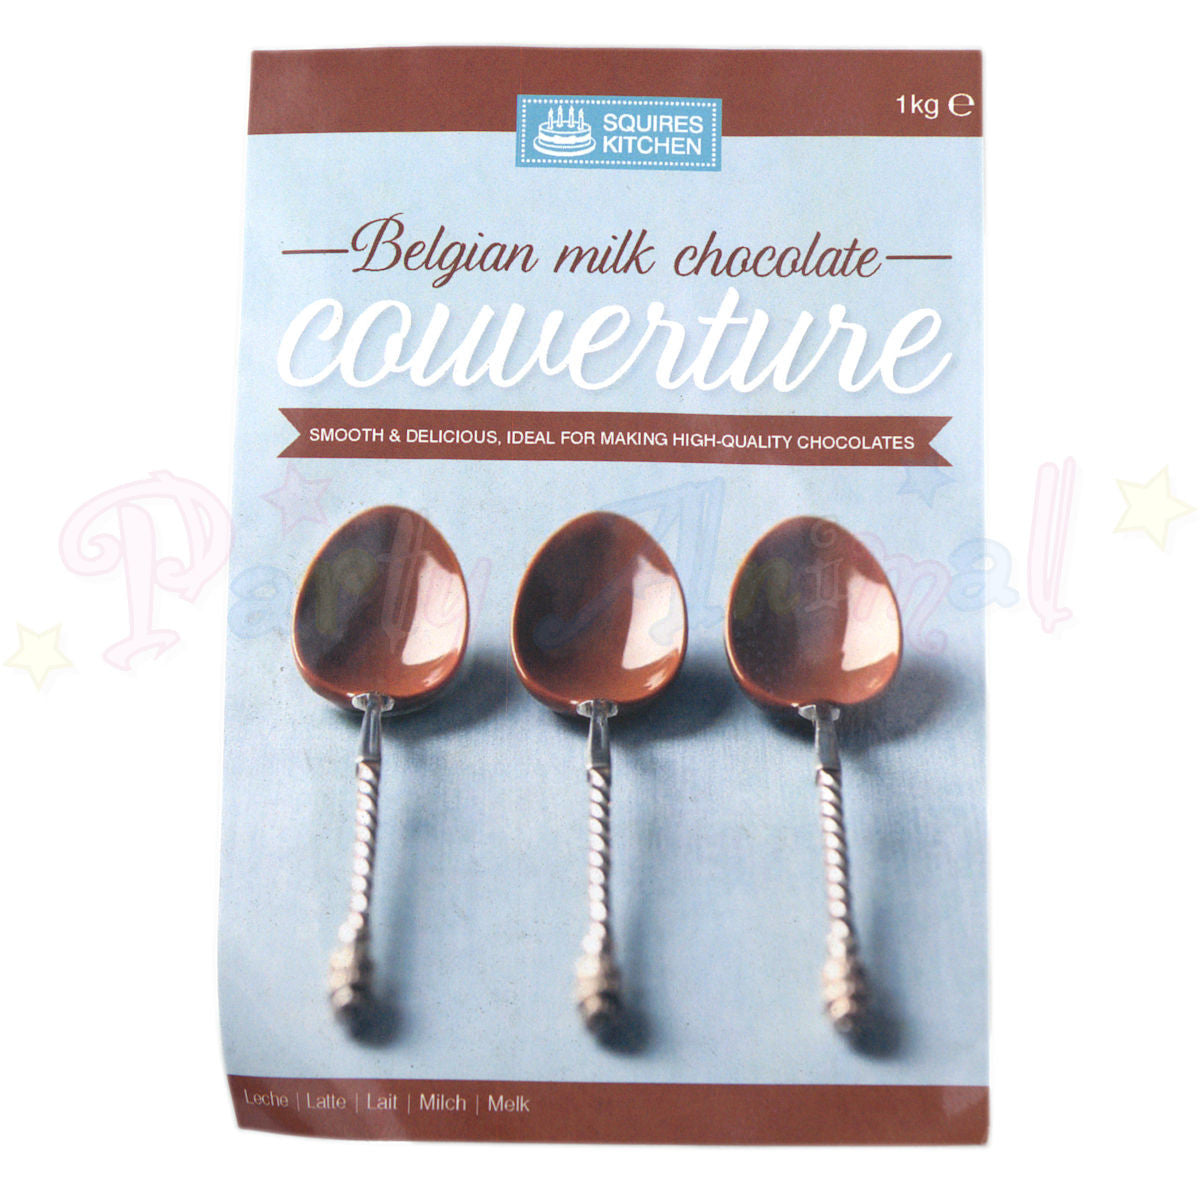 Couverture - Belgian Milk Chocolate - 1kg Pack